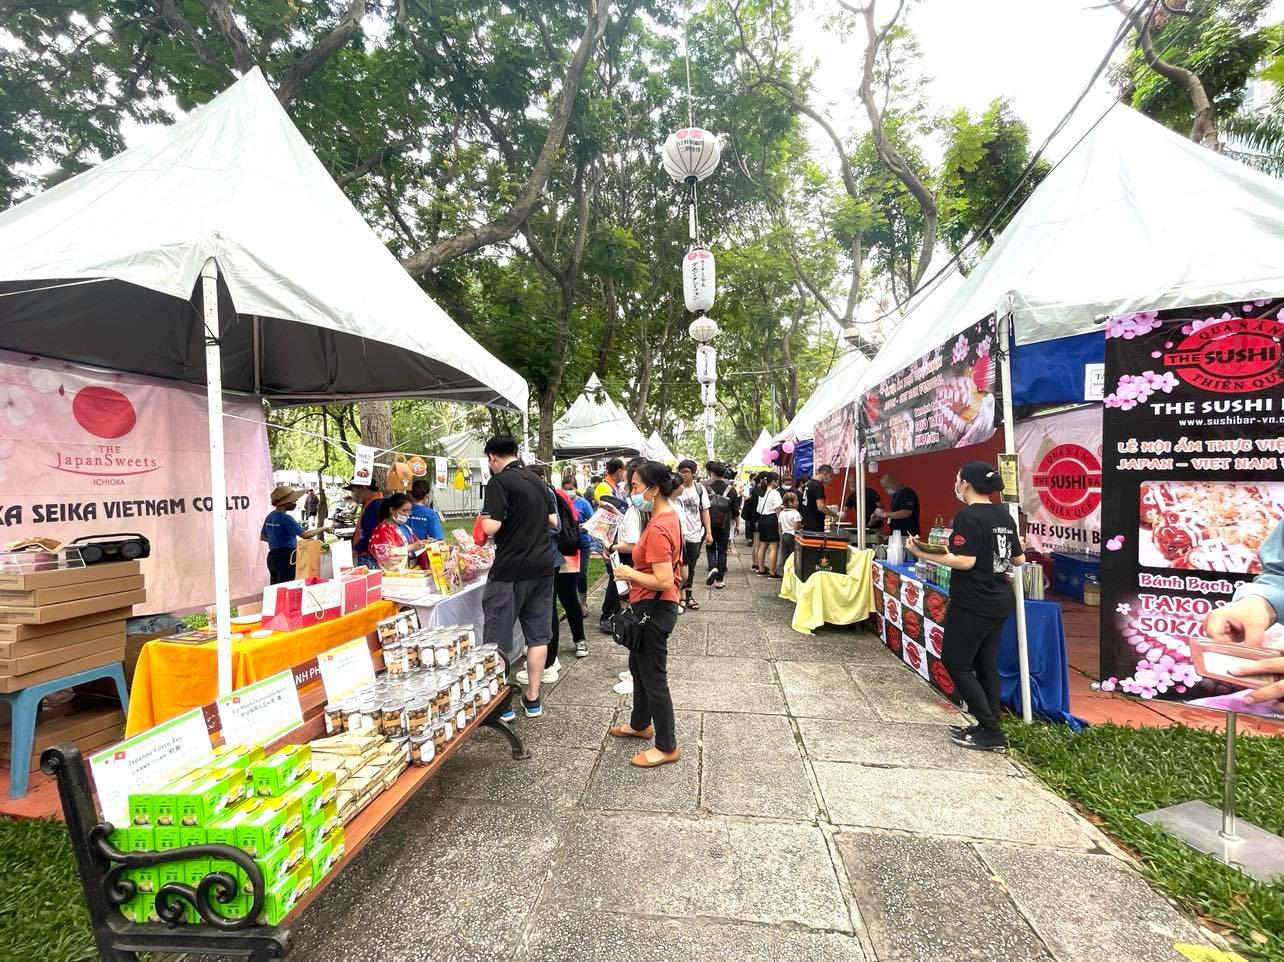 Food booths at the Japan Vietnam Festival in Ho Chi Minh City on April 17, 2021. Photo: Dong Nguyen / Tuoi Tre News